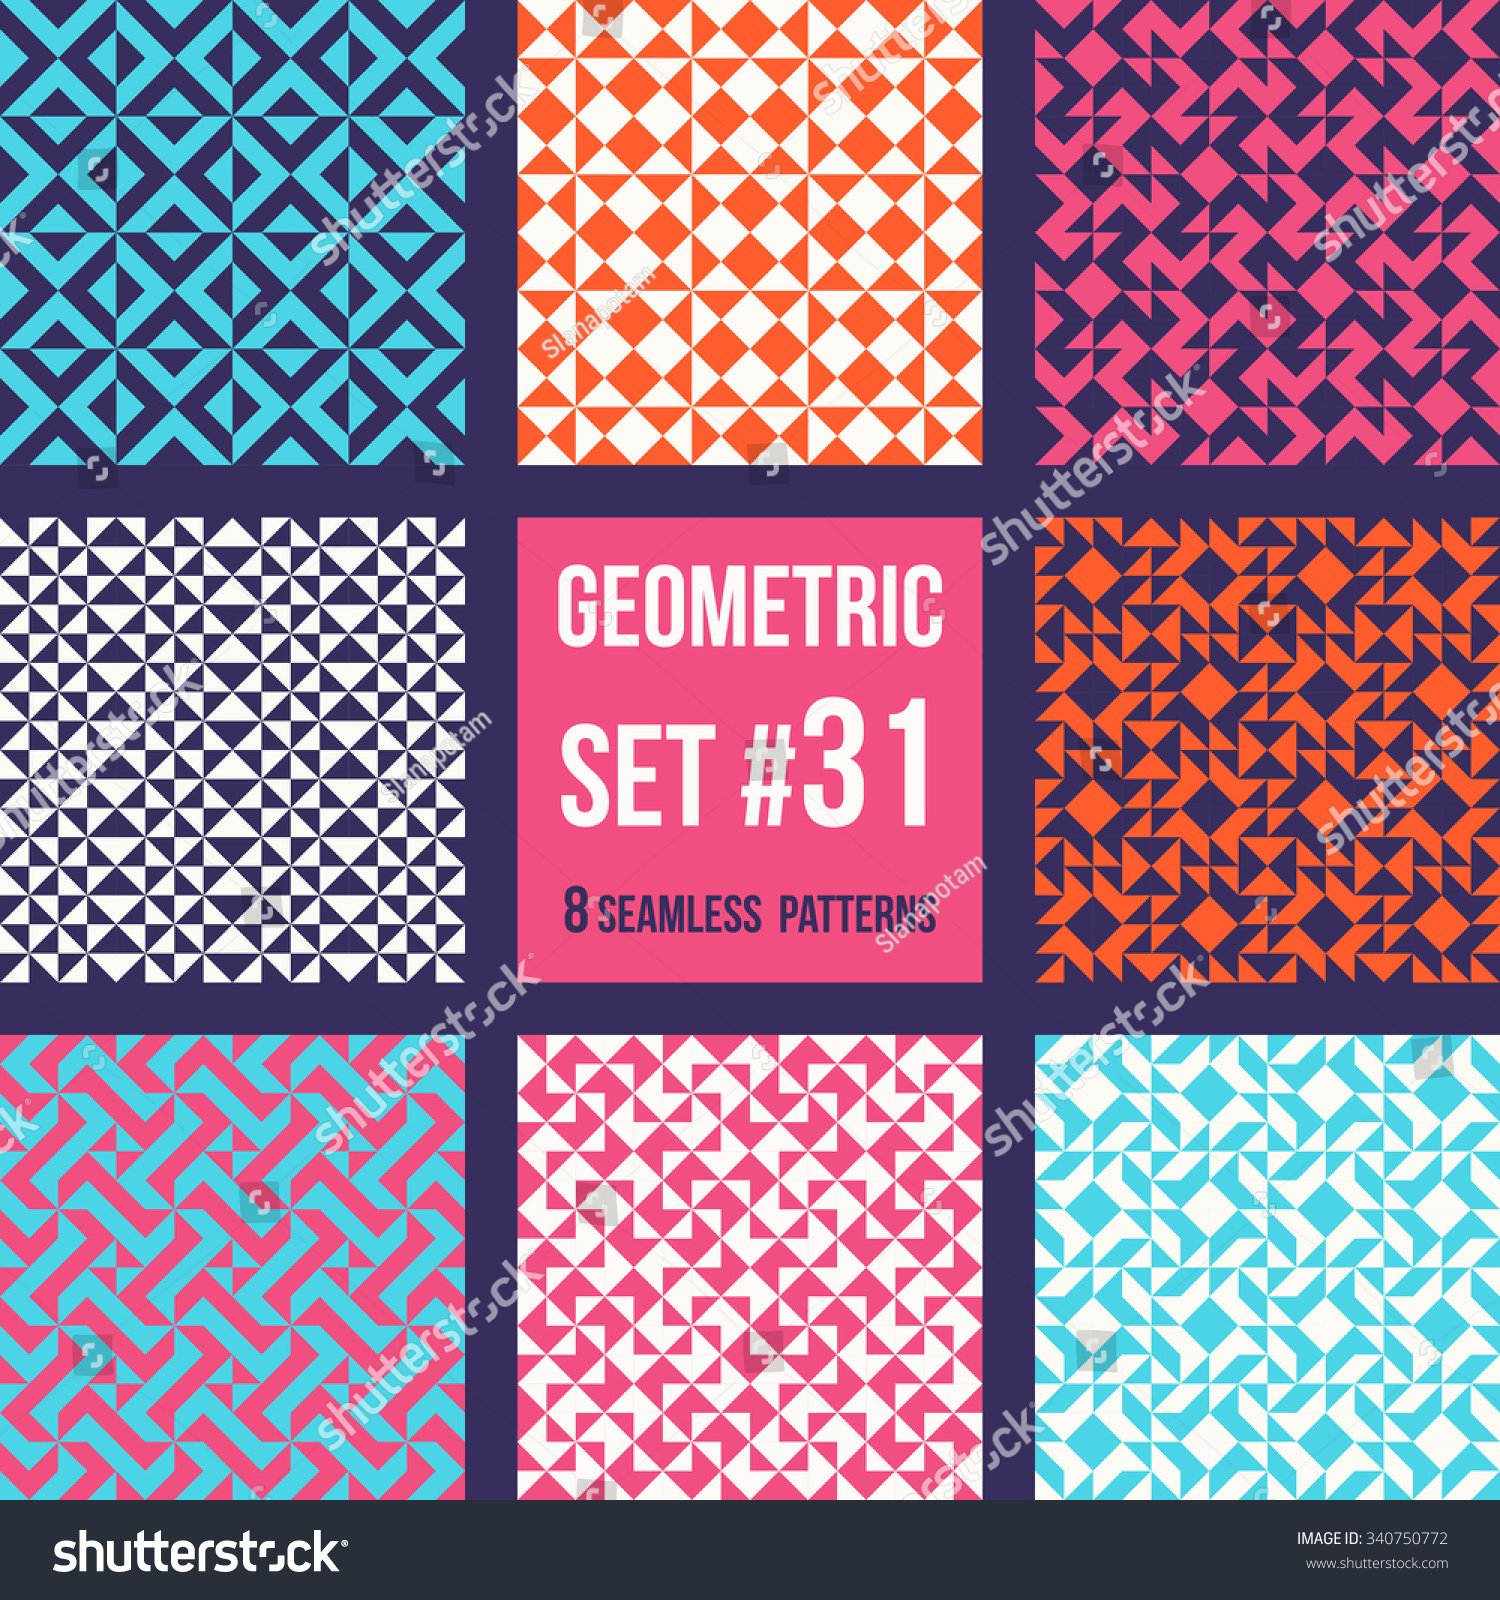 Easy Geometric Patterns New Inspiration